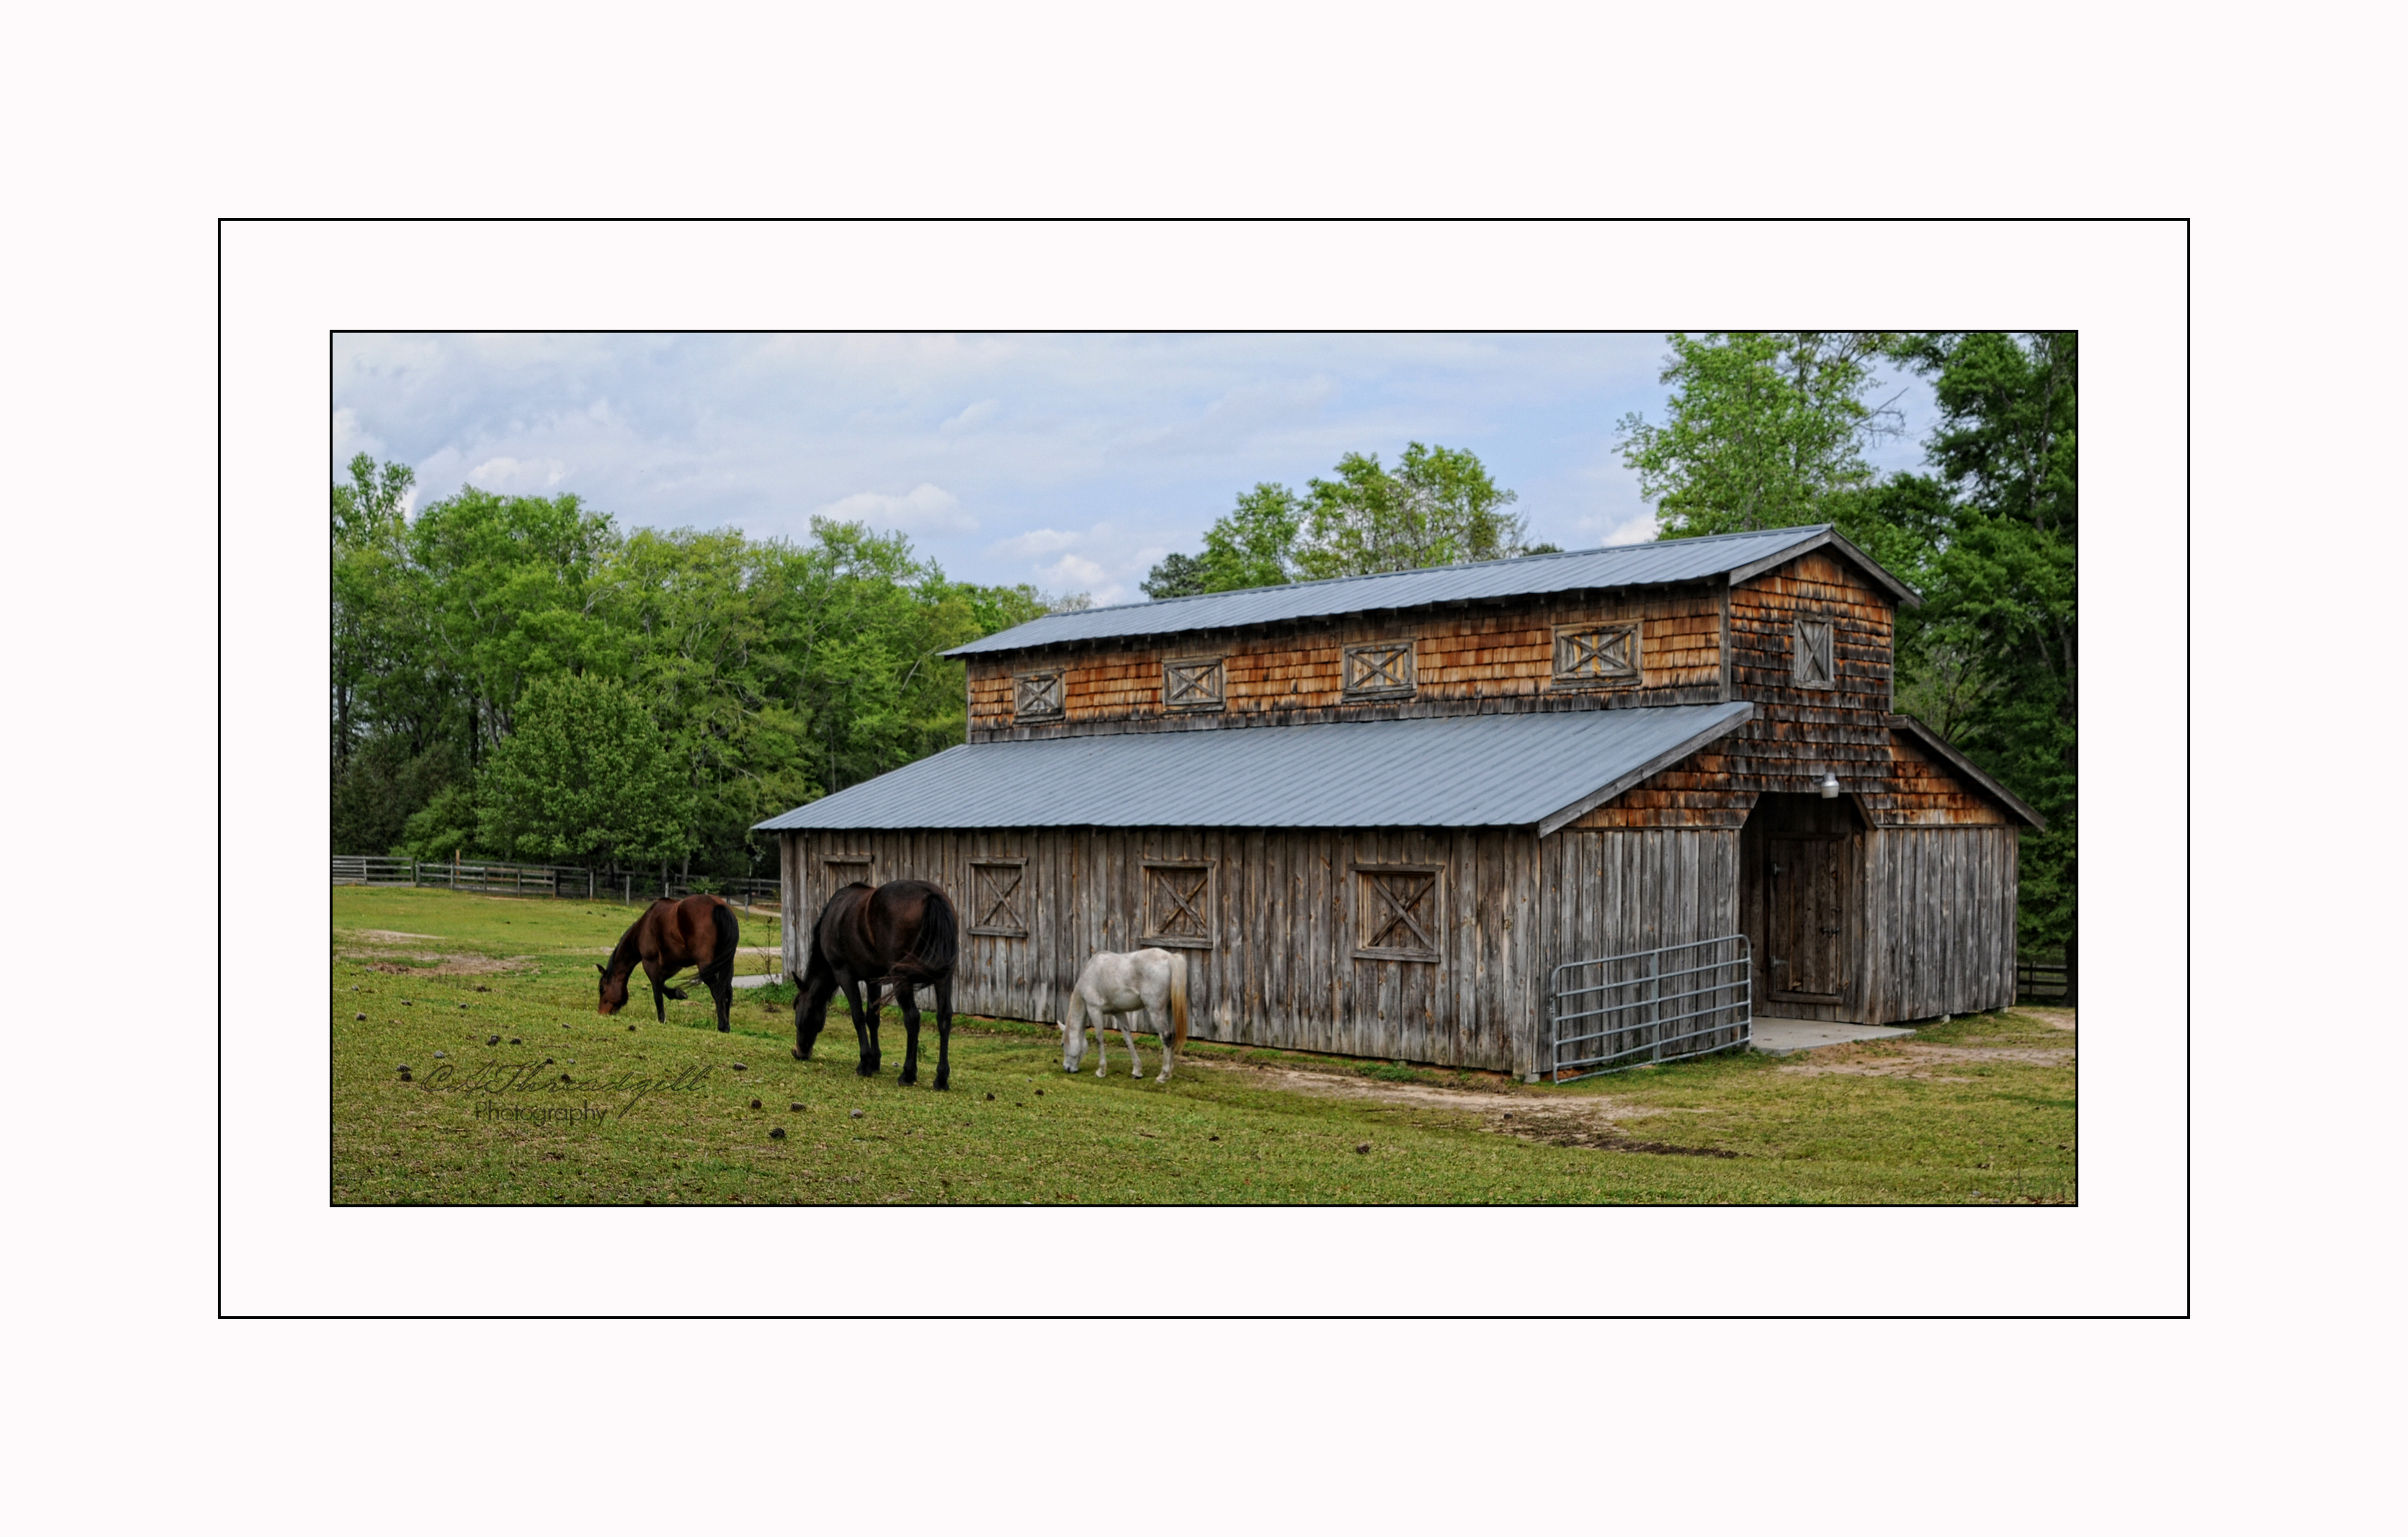 Horses ranch farms c a threadgill photographyc a for Ranch and rural living